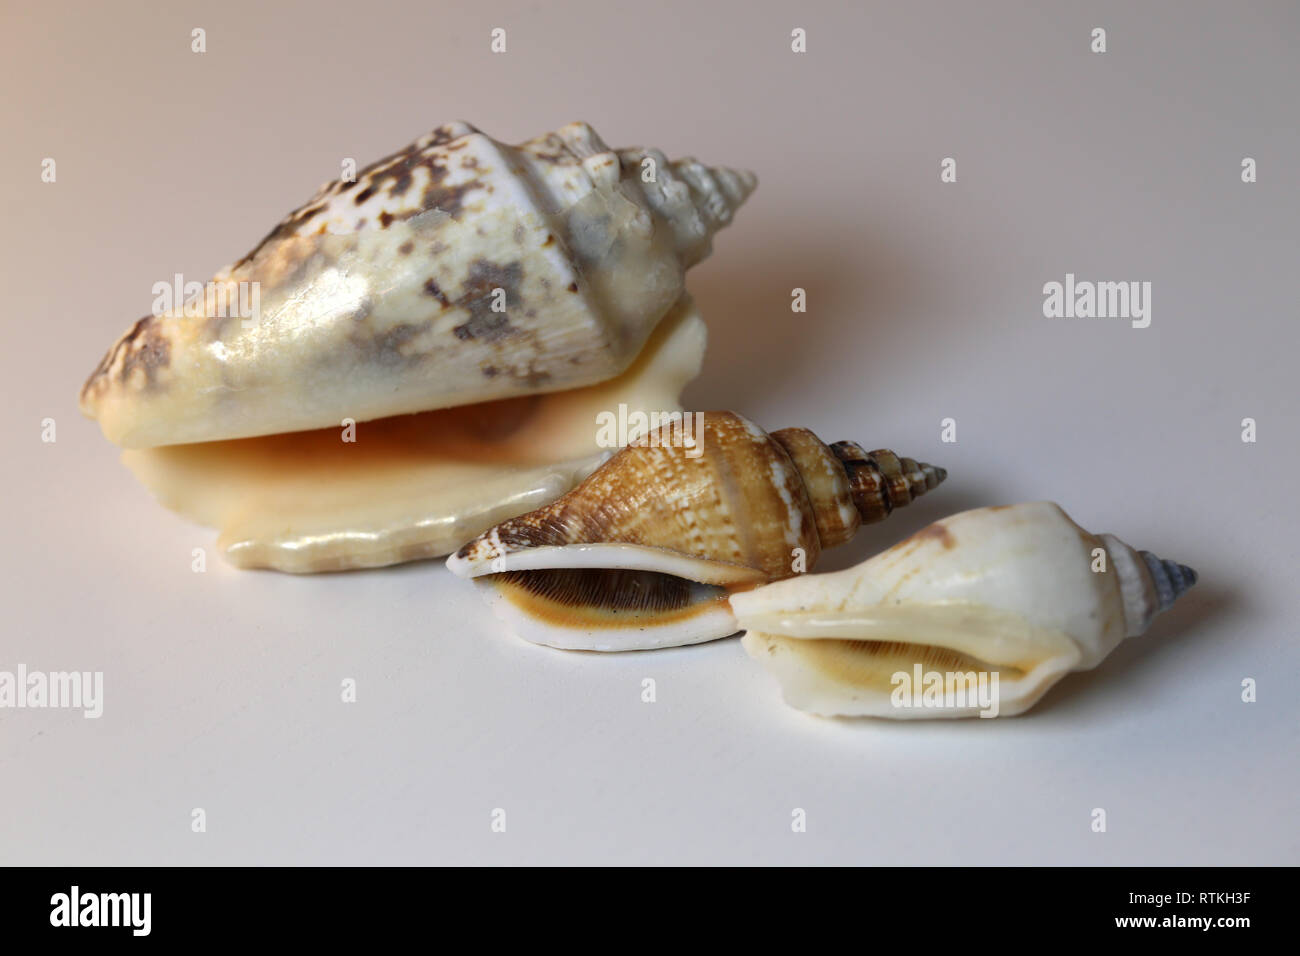 Still life photo of beautiful sea mollusk shells on a white table. Lovely souvenirs from a vacation by the sea. Macro image with colors. - Stock Image